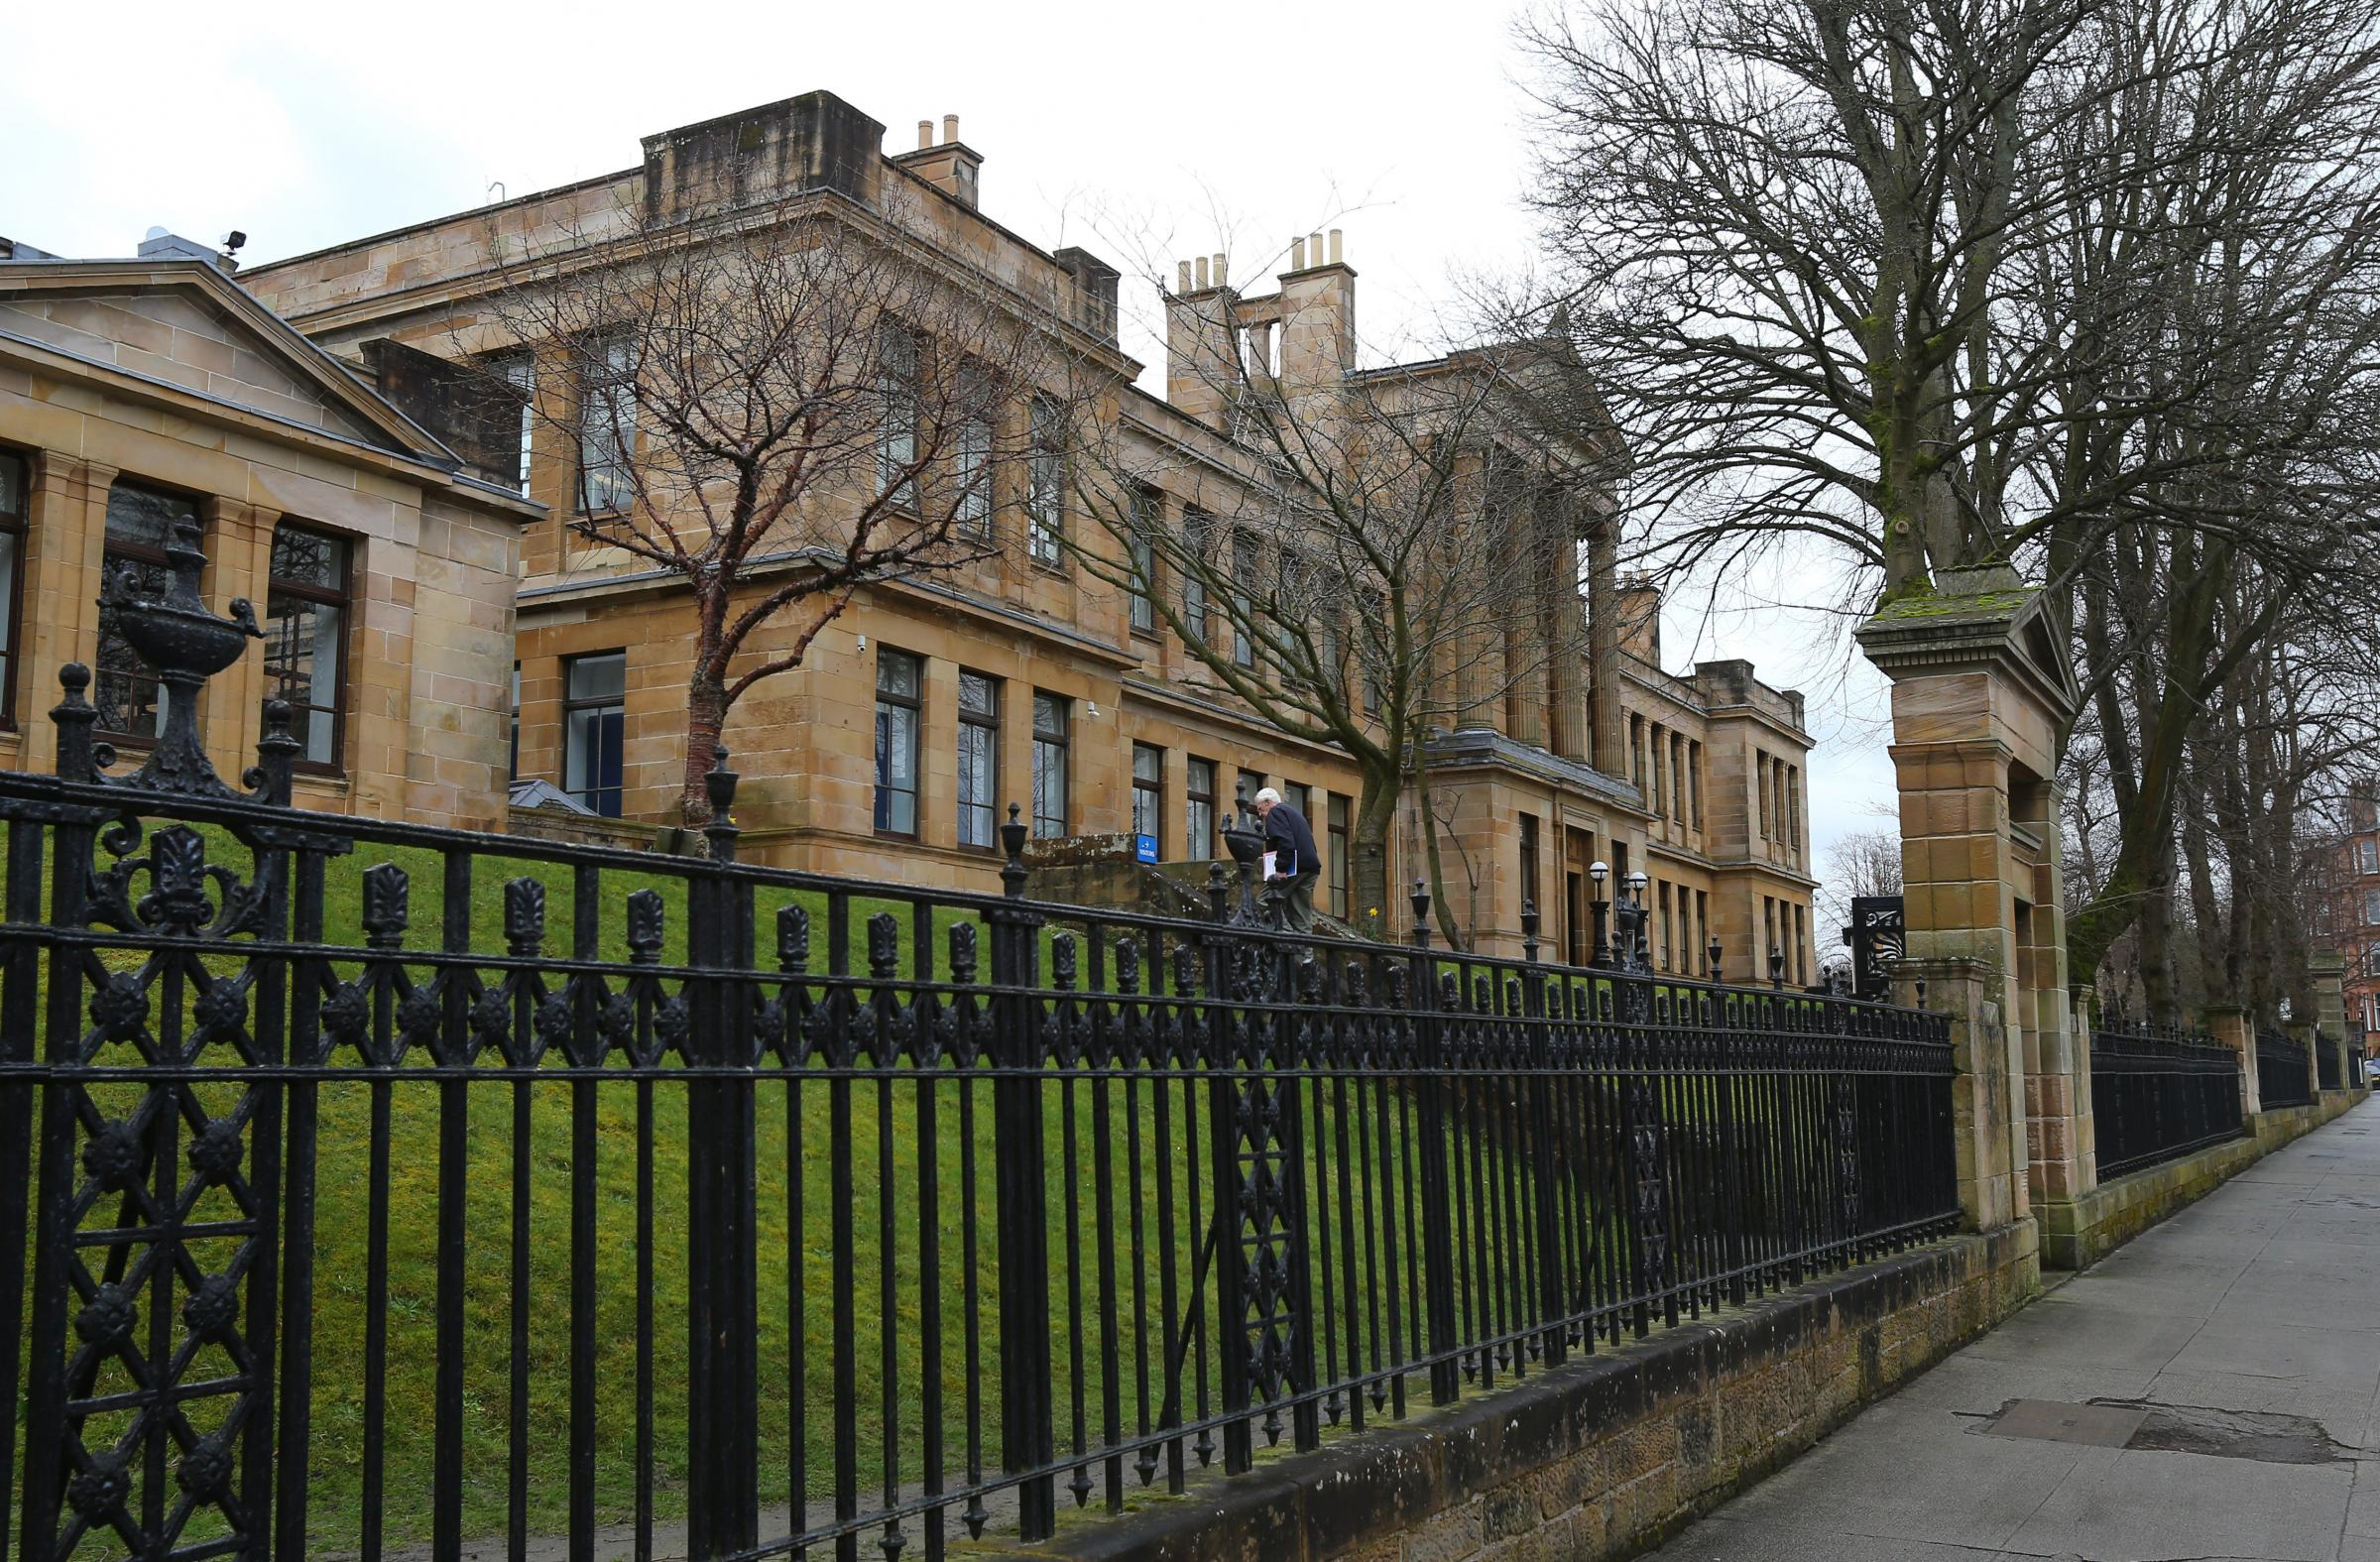 Private schools such as Kelvinside Academy in Glasgow currently benefit from business rates relief because they are charities